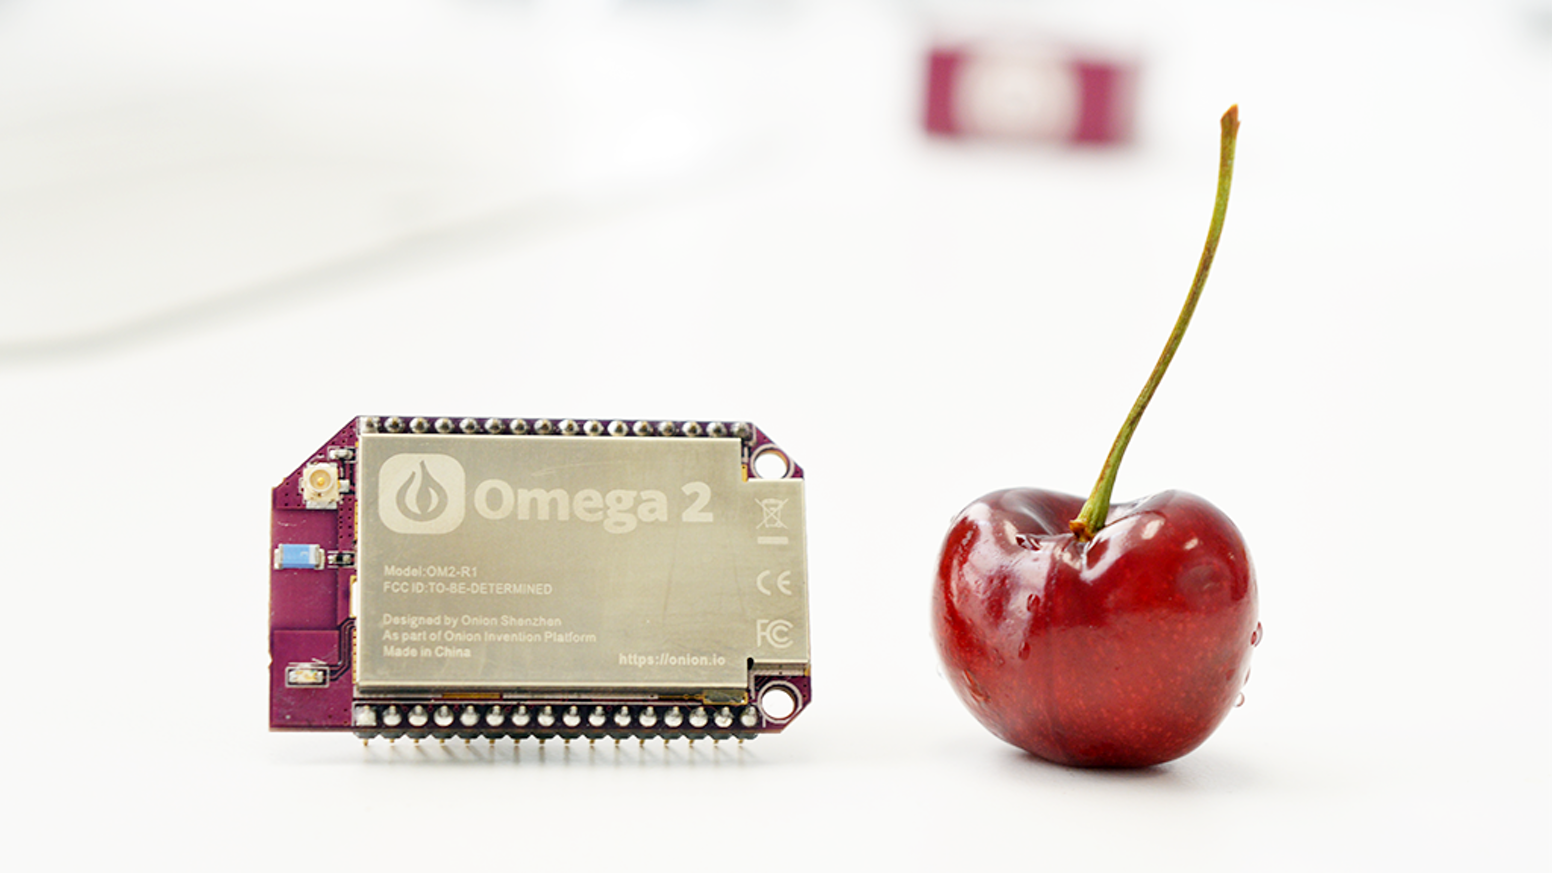 Omega2: $5 Linux Computer with Wi-Fi, Made for IoT by Onion